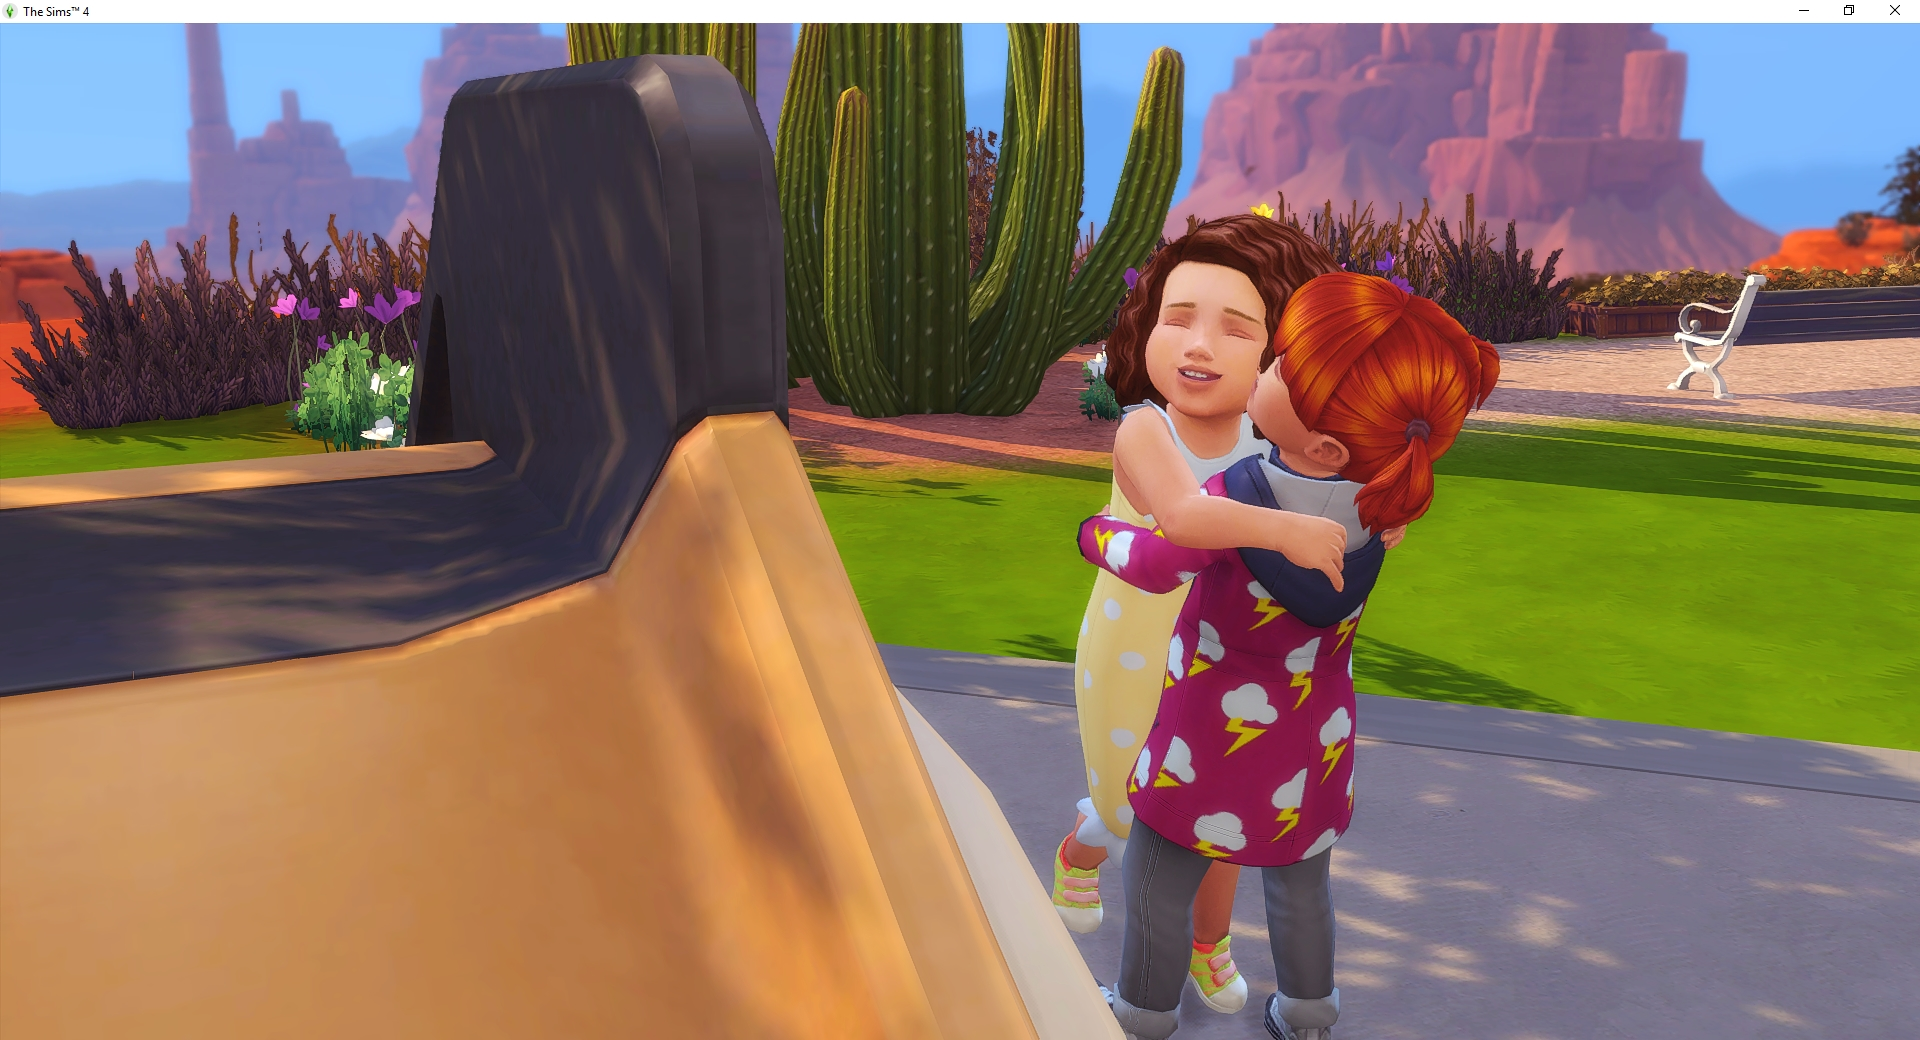 Masterful Sims: Still More Toddlers